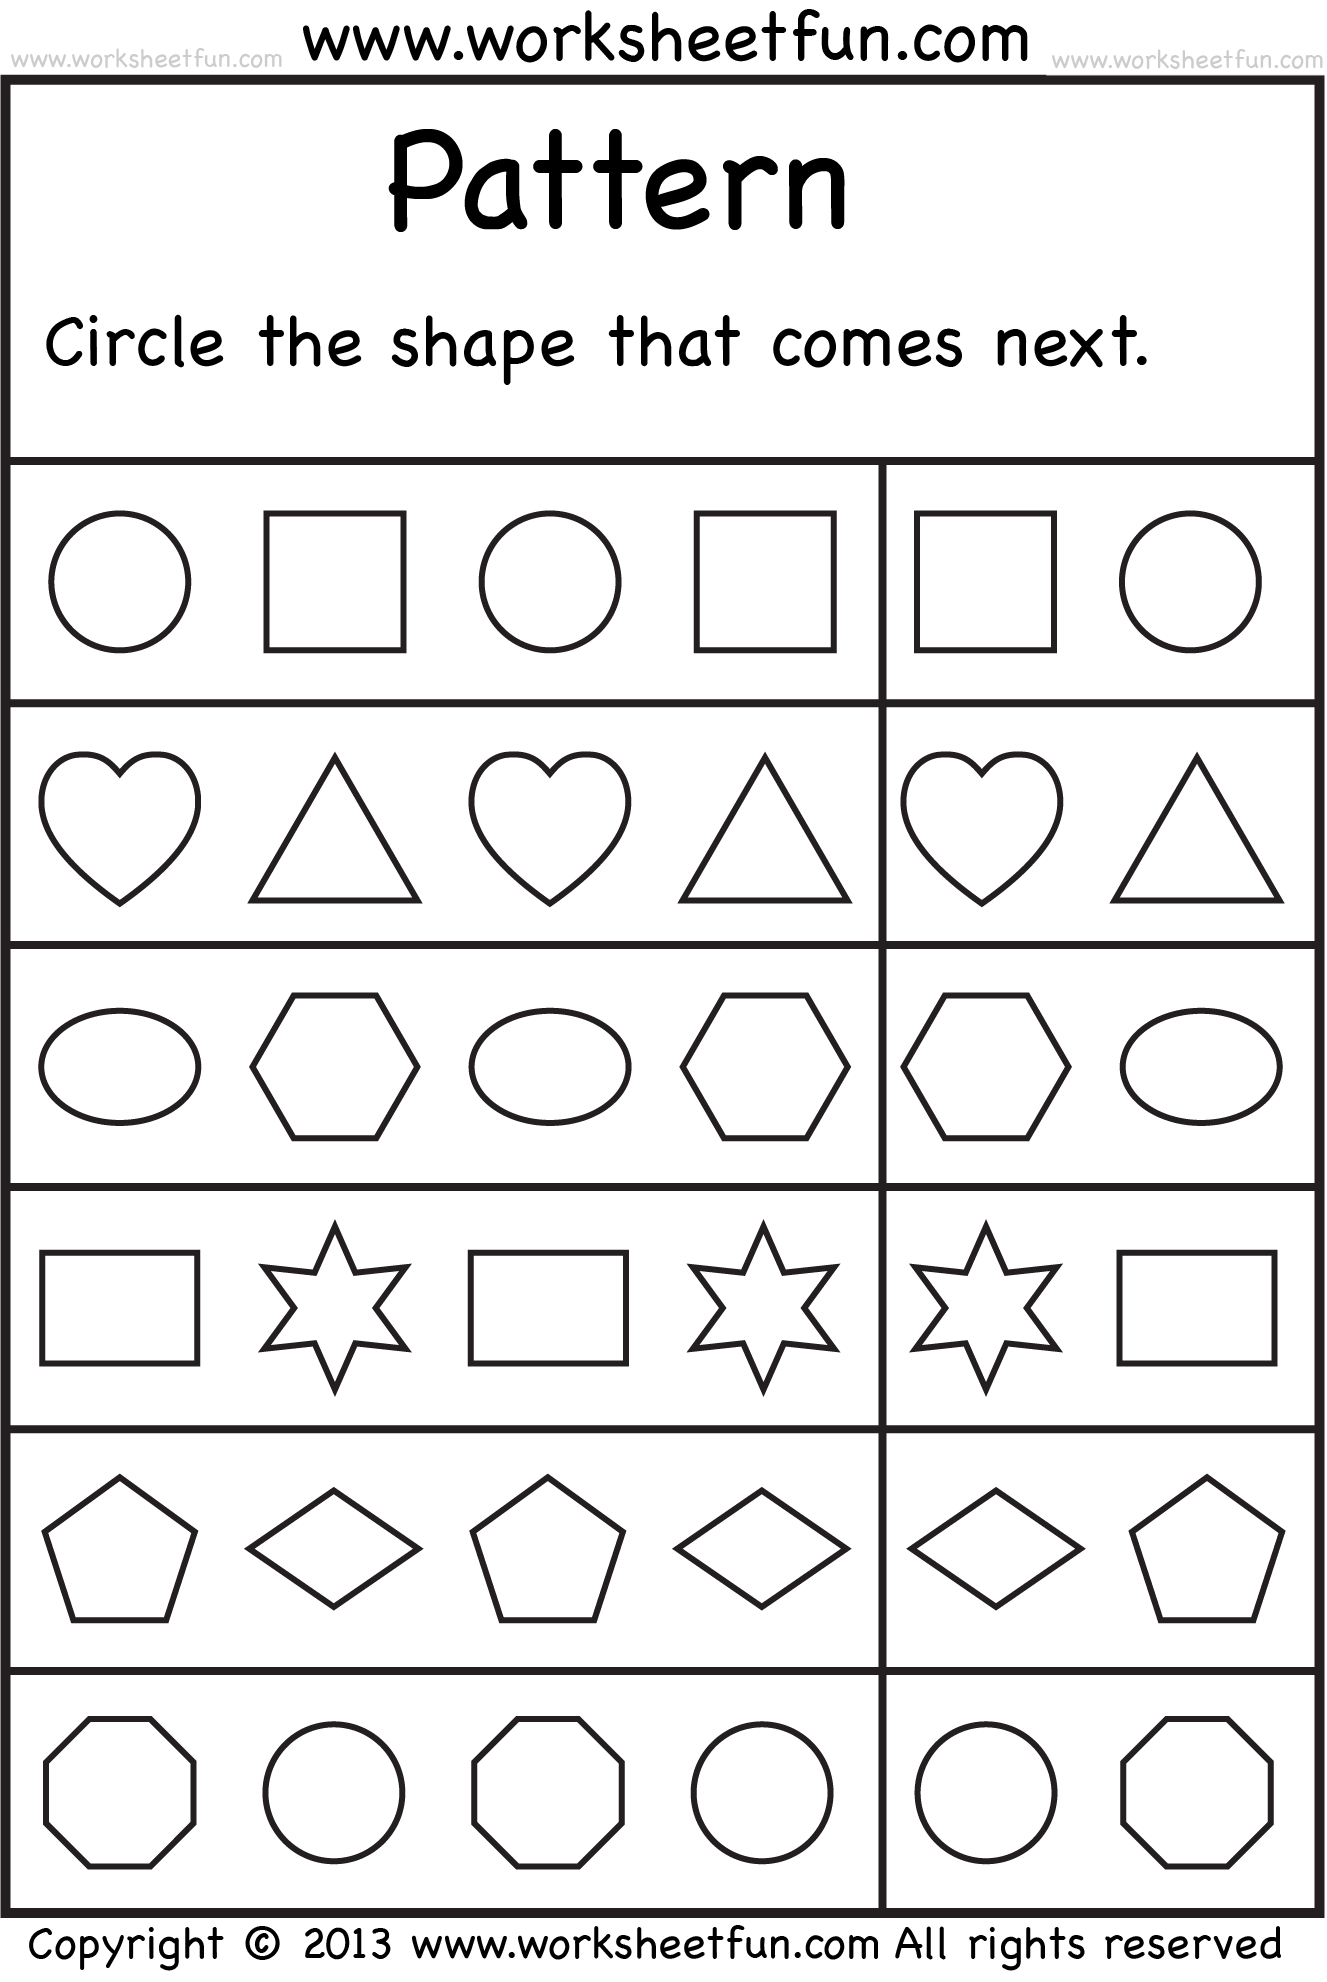 Weirdmailus  Nice  Images About School Worksheets On Pinterest  Number Words  With Handsome  Images About School Worksheets On Pinterest  Number Words Alphabet Worksheets And Free Printable Kindergarten Worksheets With Amazing Ks Maths Worksheets Year  Also Maori Worksheets In Addition Tenses In English Grammar Worksheets And Linear Equations In One Variable Worksheets As Well As Grade  English Worksheets Additionally Direct Indirect Worksheet From Pinterestcom With Weirdmailus  Handsome  Images About School Worksheets On Pinterest  Number Words  With Amazing  Images About School Worksheets On Pinterest  Number Words Alphabet Worksheets And Free Printable Kindergarten Worksheets And Nice Ks Maths Worksheets Year  Also Maori Worksheets In Addition Tenses In English Grammar Worksheets From Pinterestcom